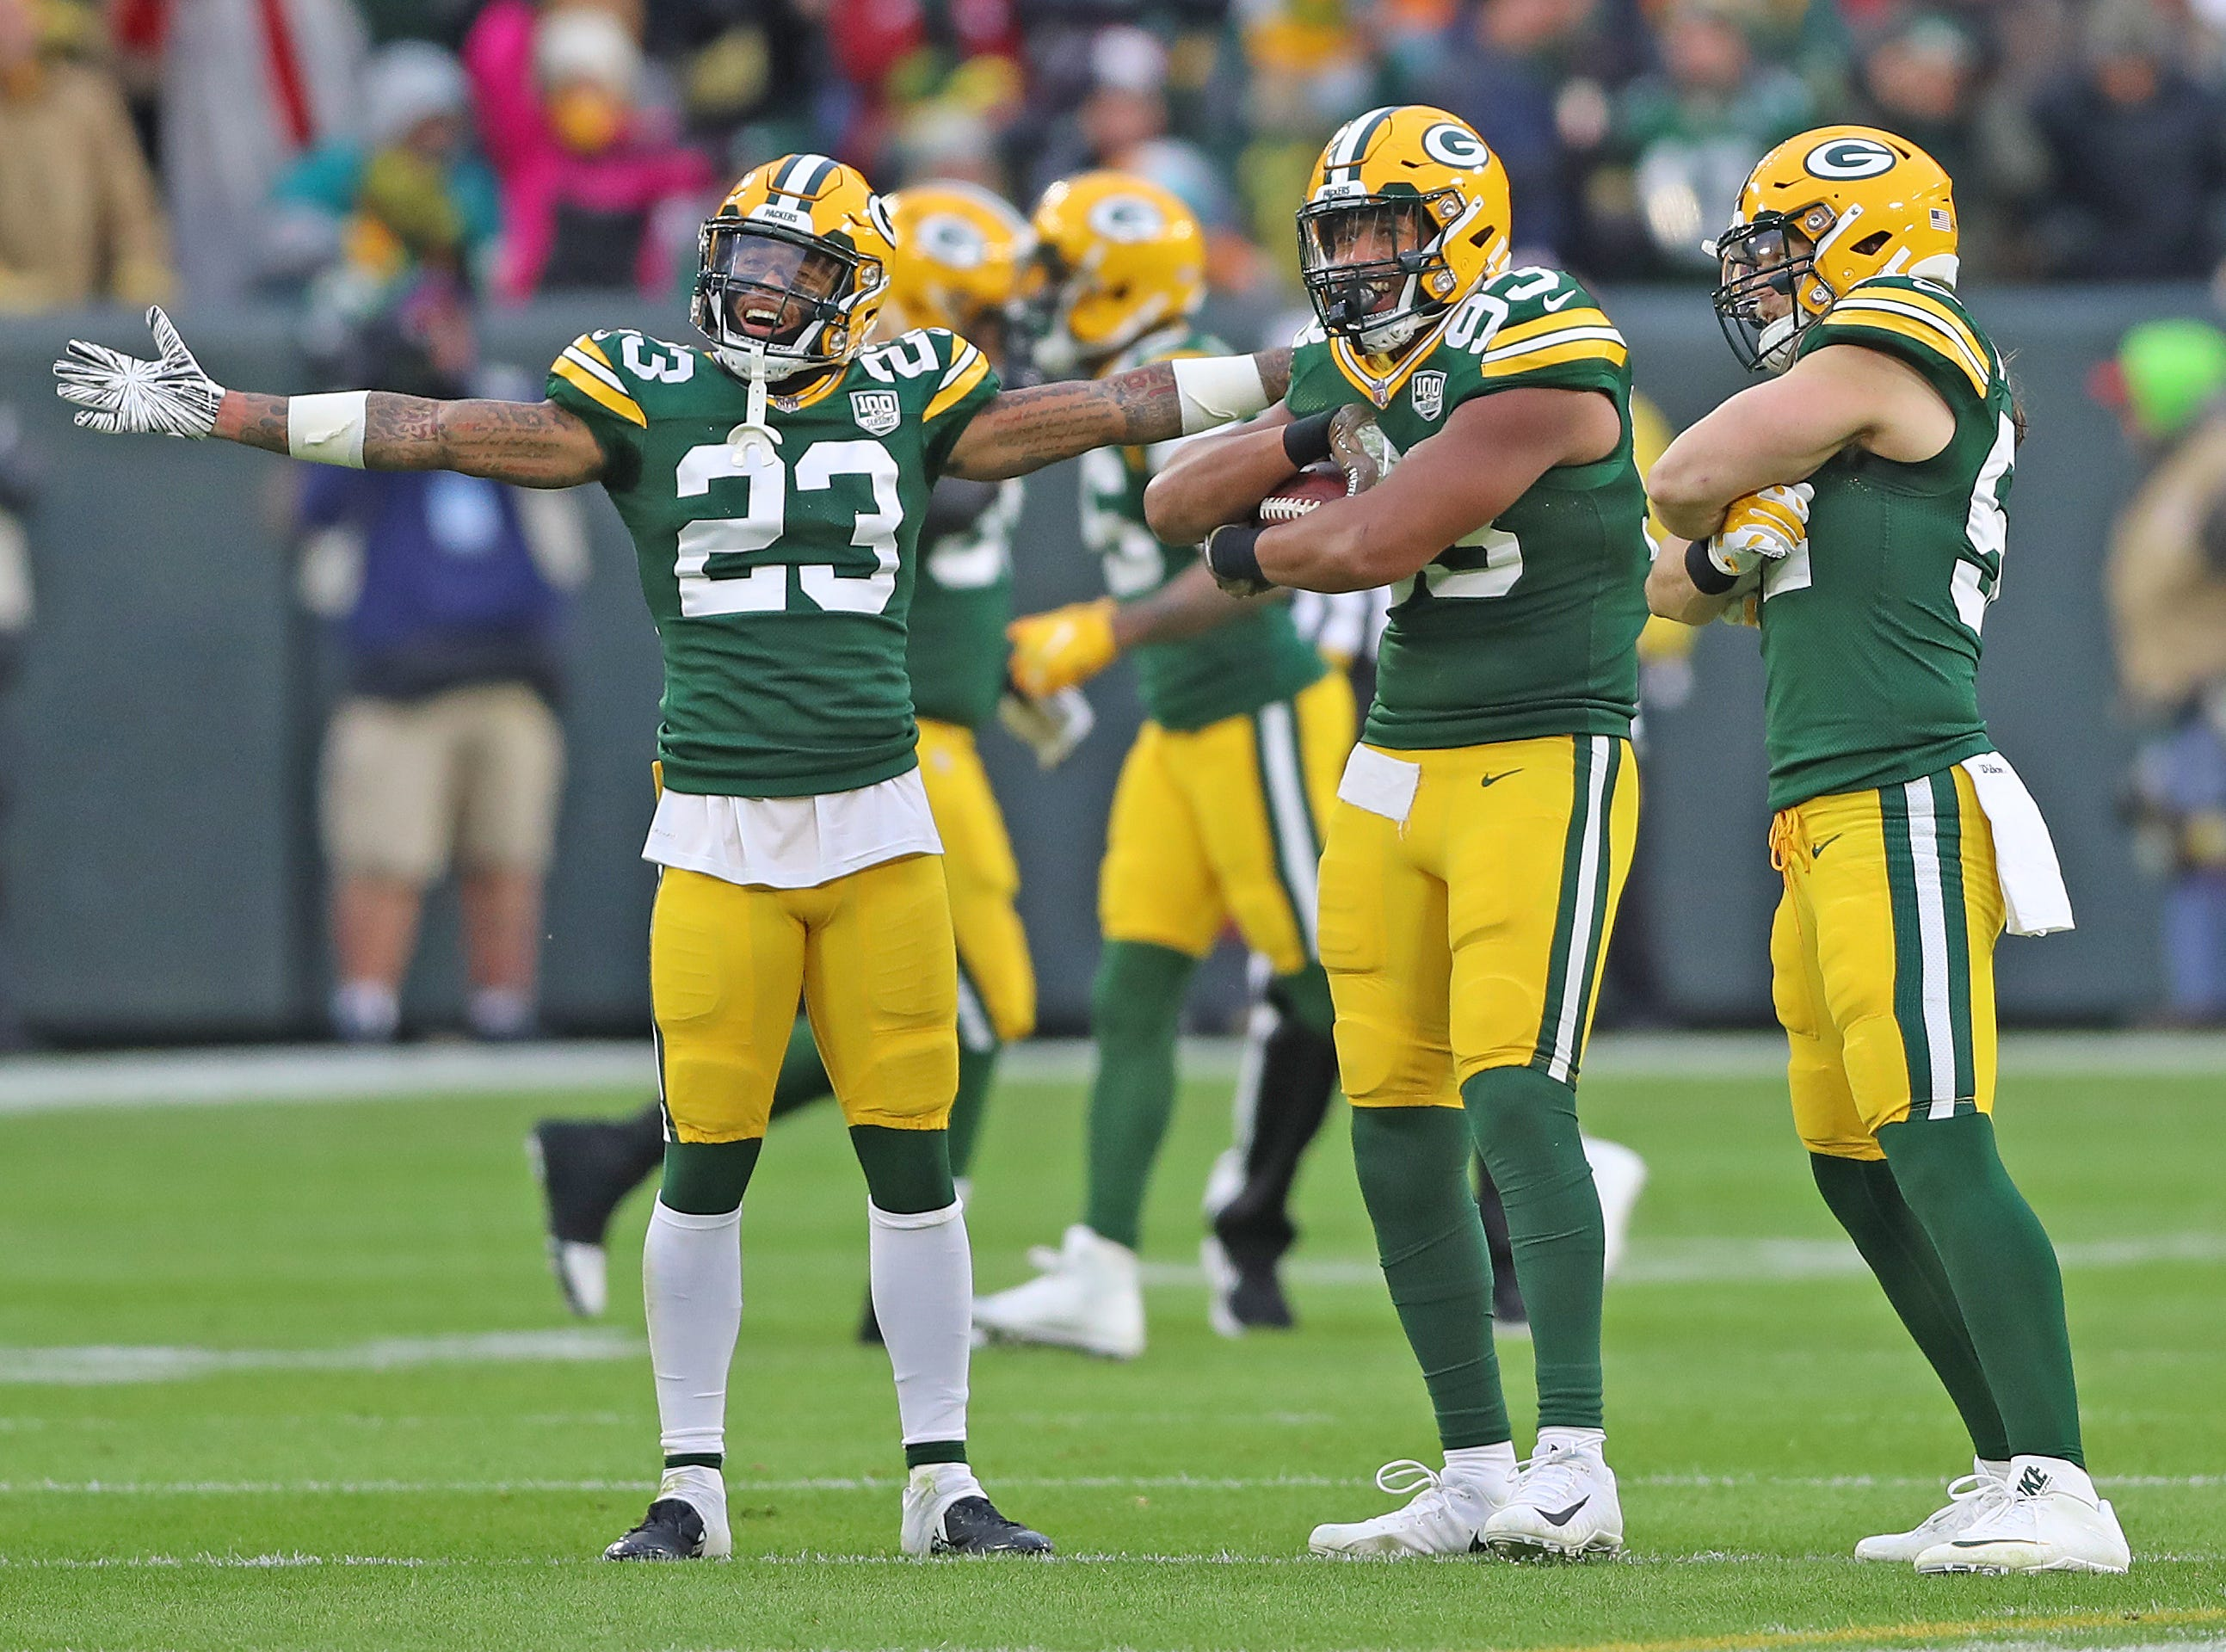 Green Bay Packers linebacker Reggie Gilbert (93) celebrates a fumble recovery with outside linebacker Clay Matthews (52) and cornerback Jaire Alexander (23) against the Miami Dolphins at Lambeau Field Sunday, November 11, 2018 in Green Bay, Wis. Jim Matthews/USA TODAY NETWORK-Wis